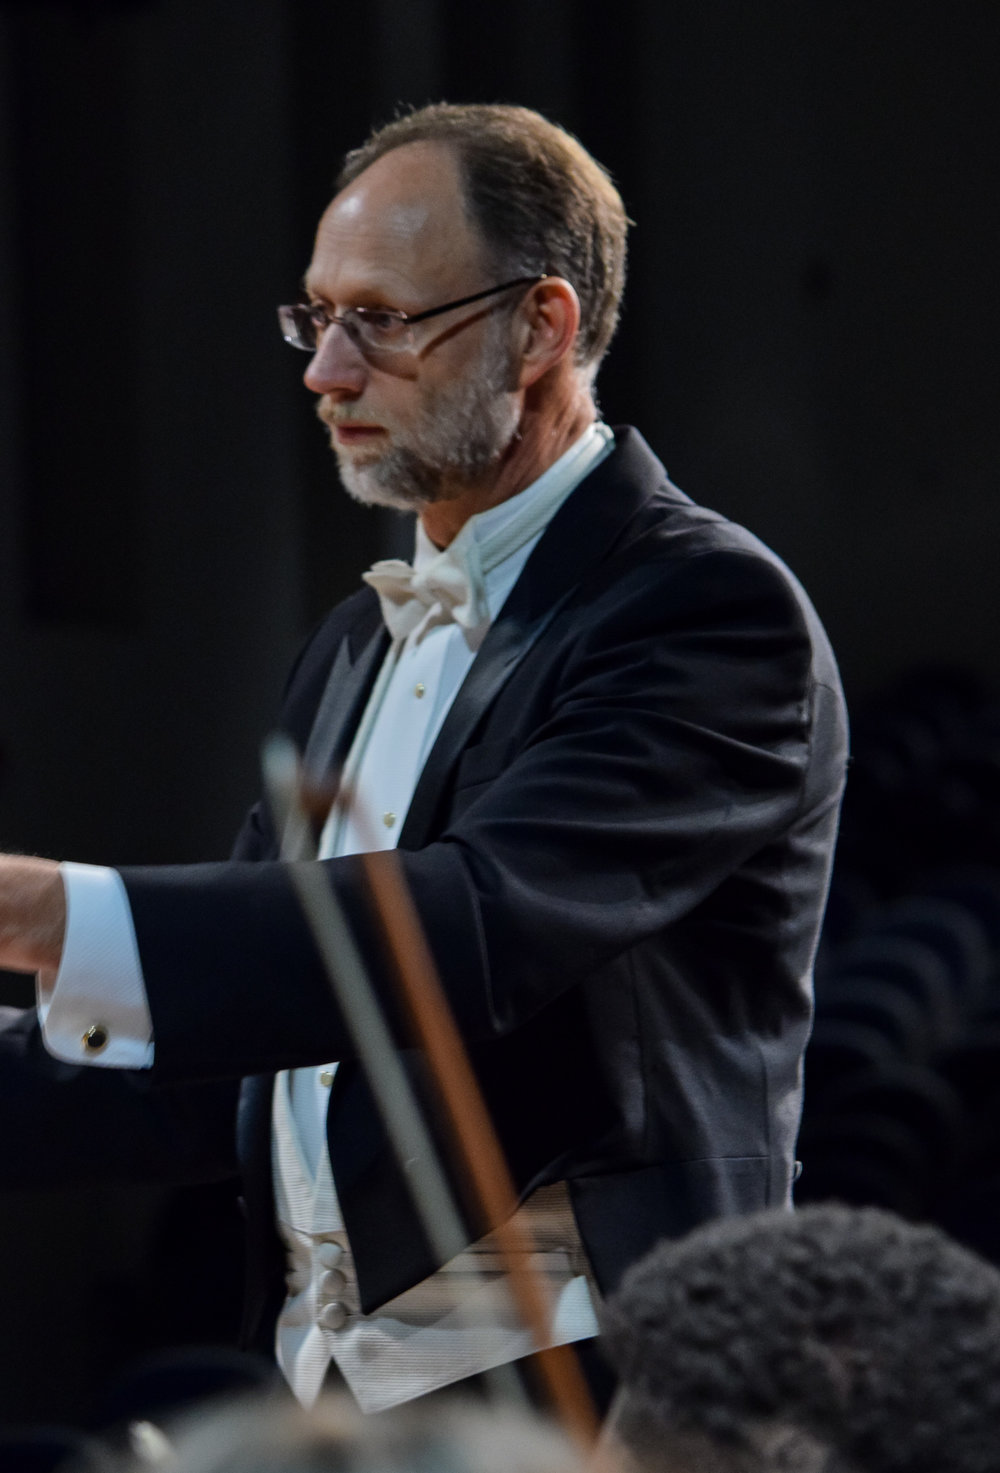 Conductor Michael Weaver shows his focus as he makes sure the orchestra stays in time.